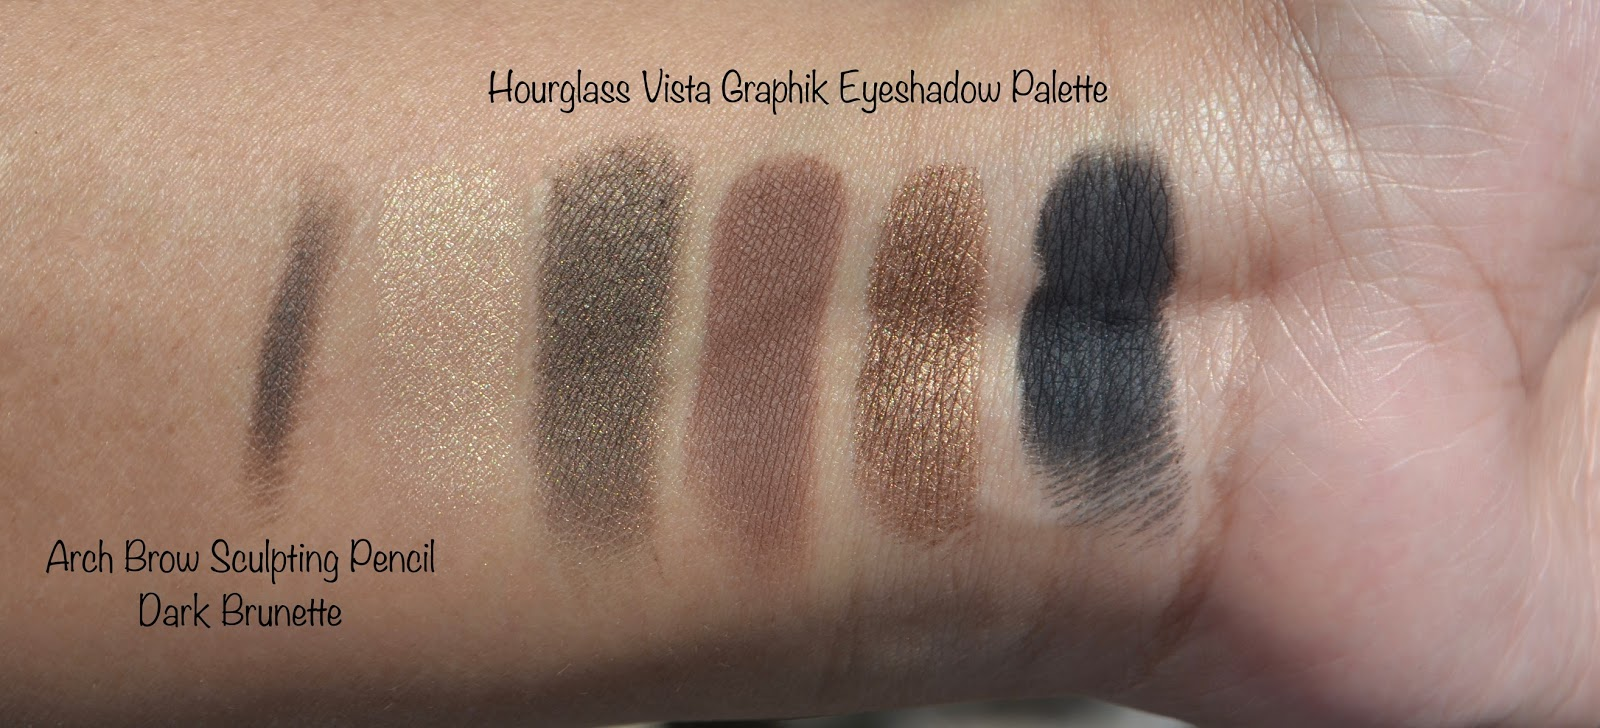 Hourglass Cosmetics Vista Graphik Eyeshadow Palette Swatches